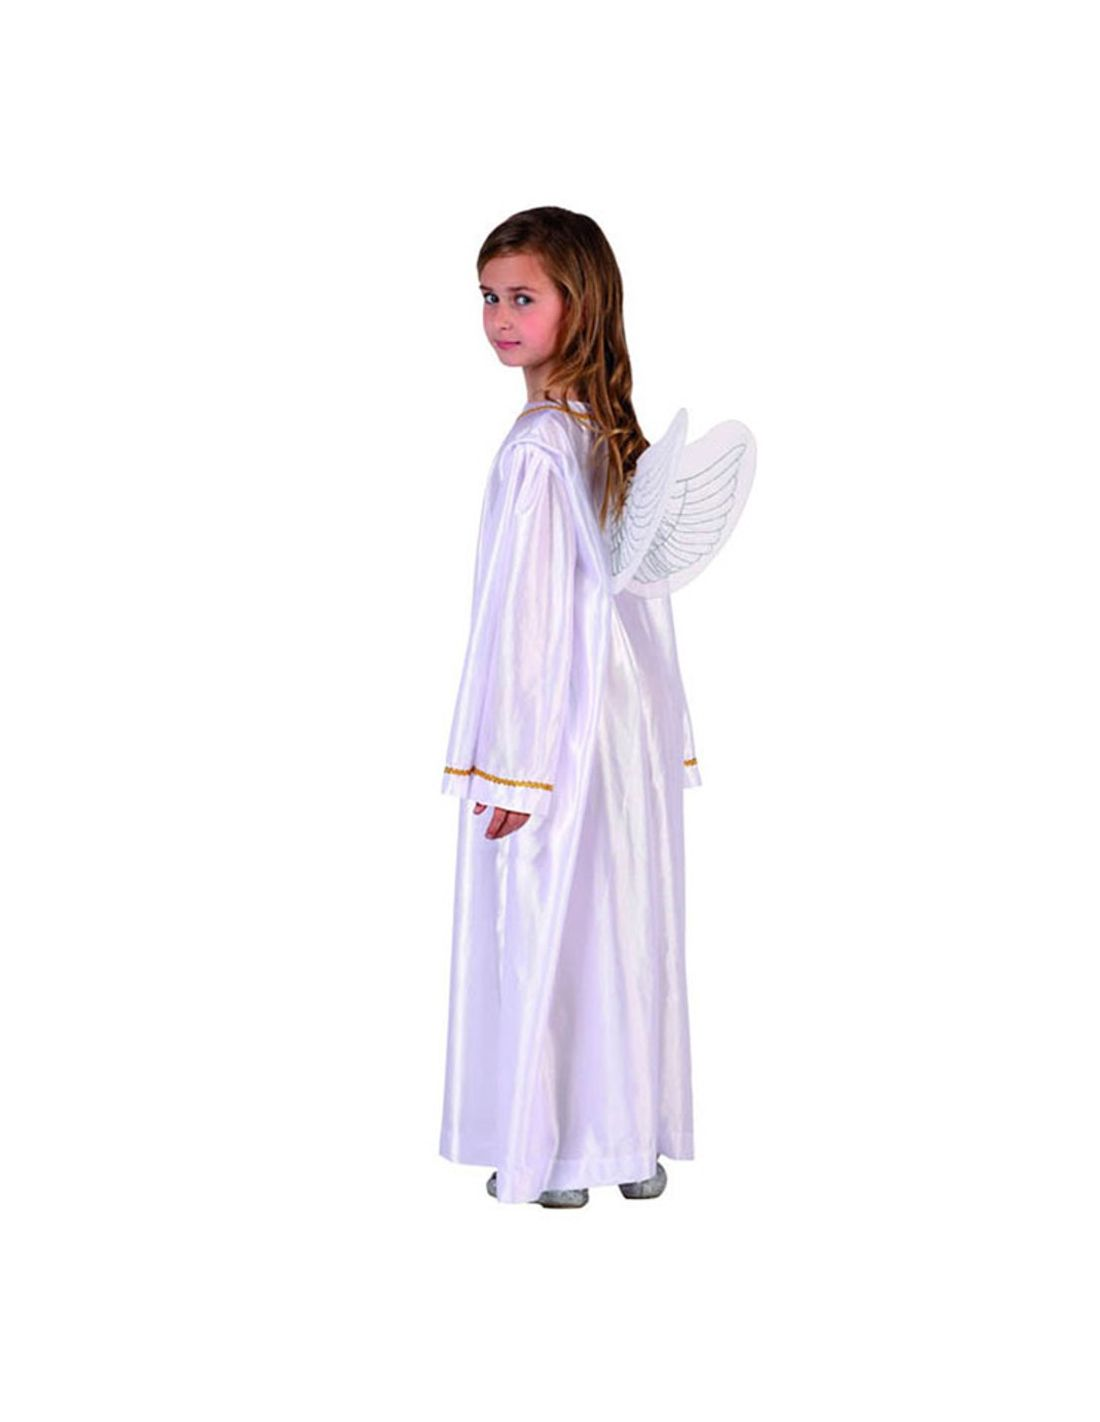 Disfraz angel infantil mercadisfraces - Disfraz angel infantil ...